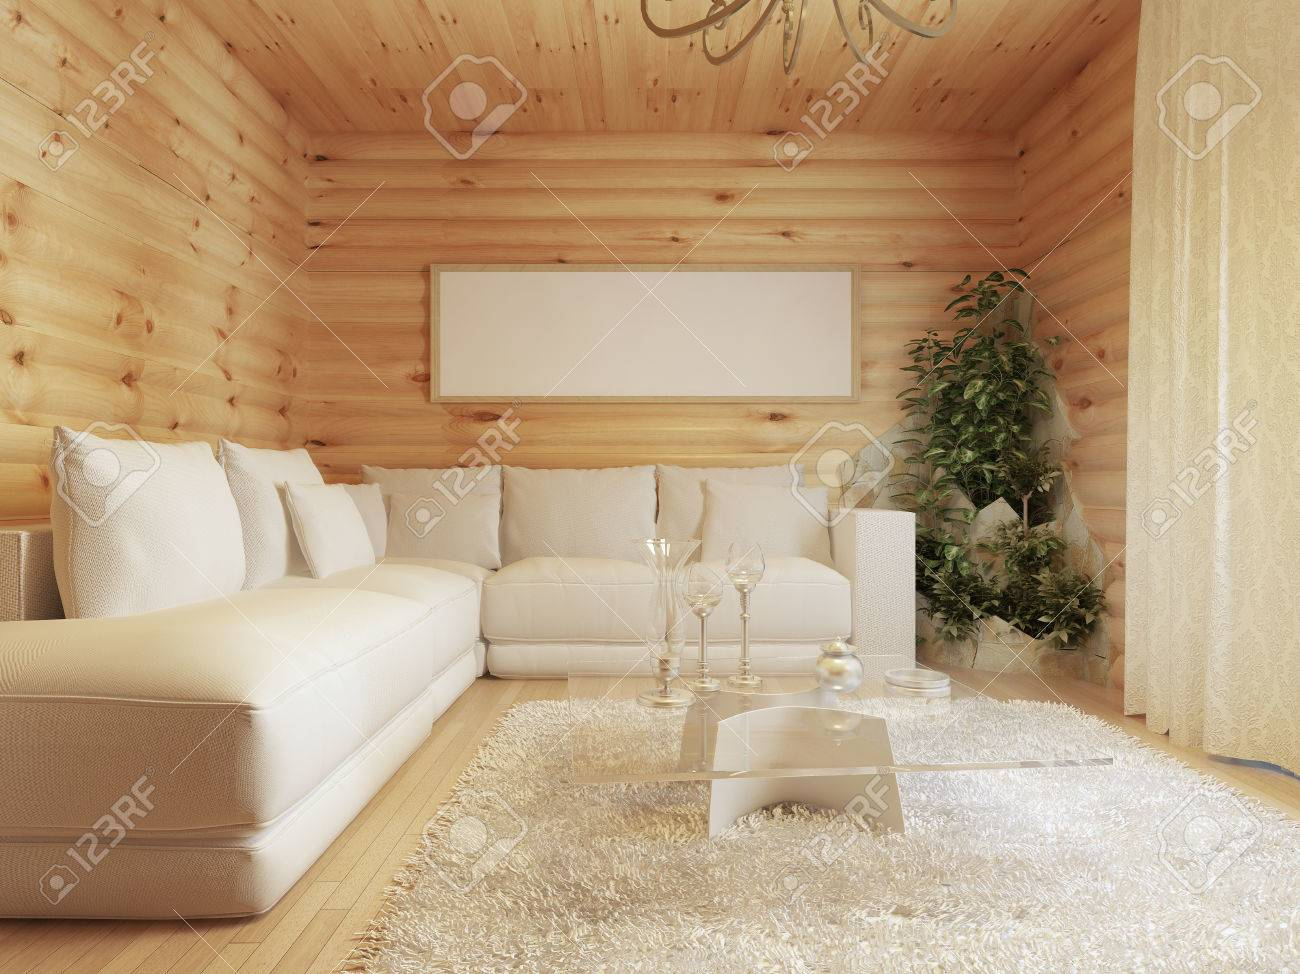 Living room interior in a log house interior in modern style with a corner sofa